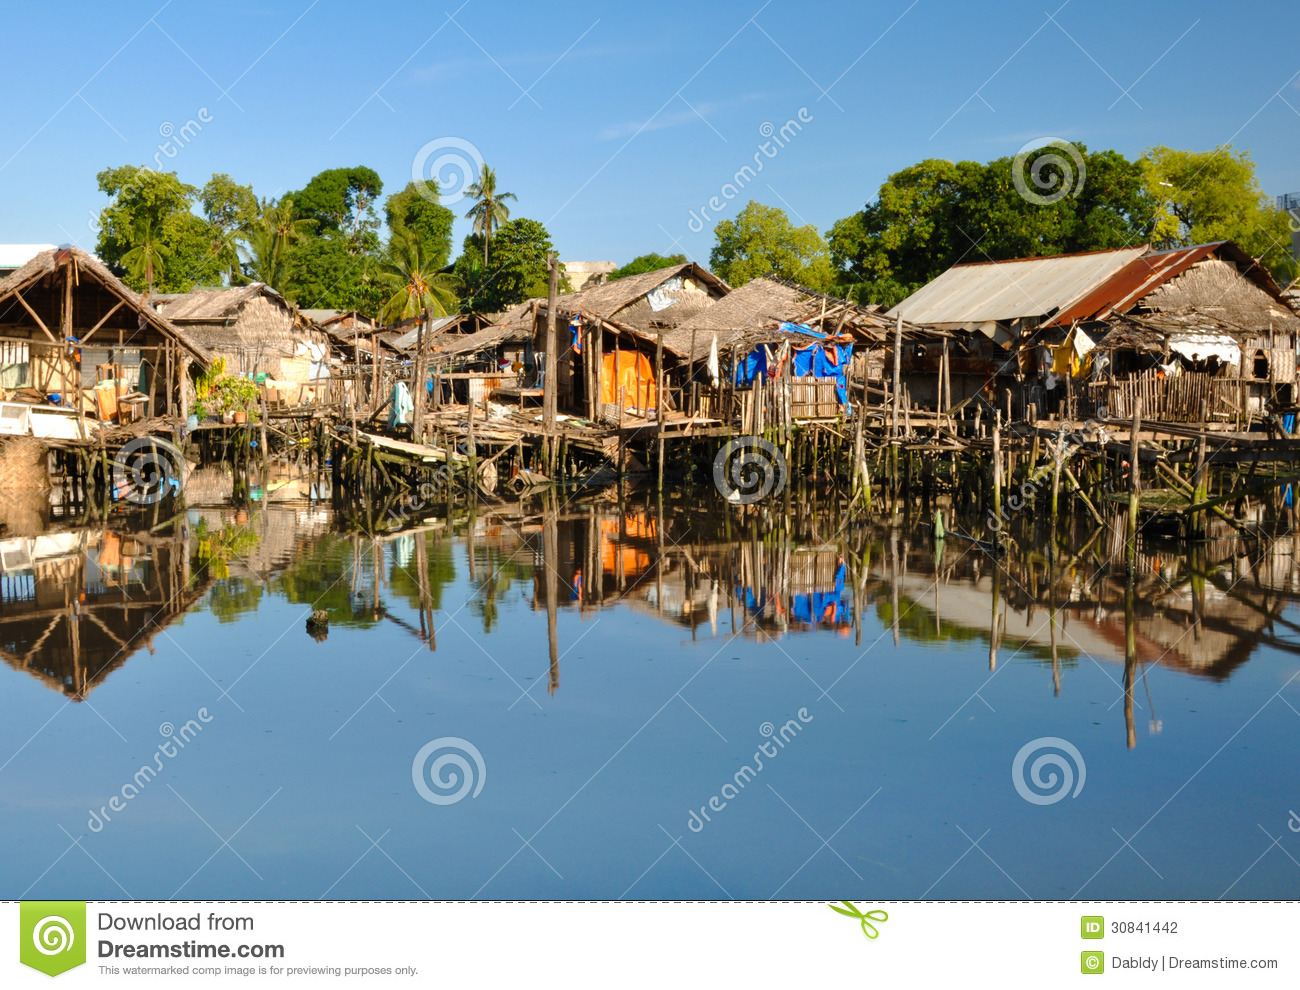 Poor House Clipart Slum Houses On Water